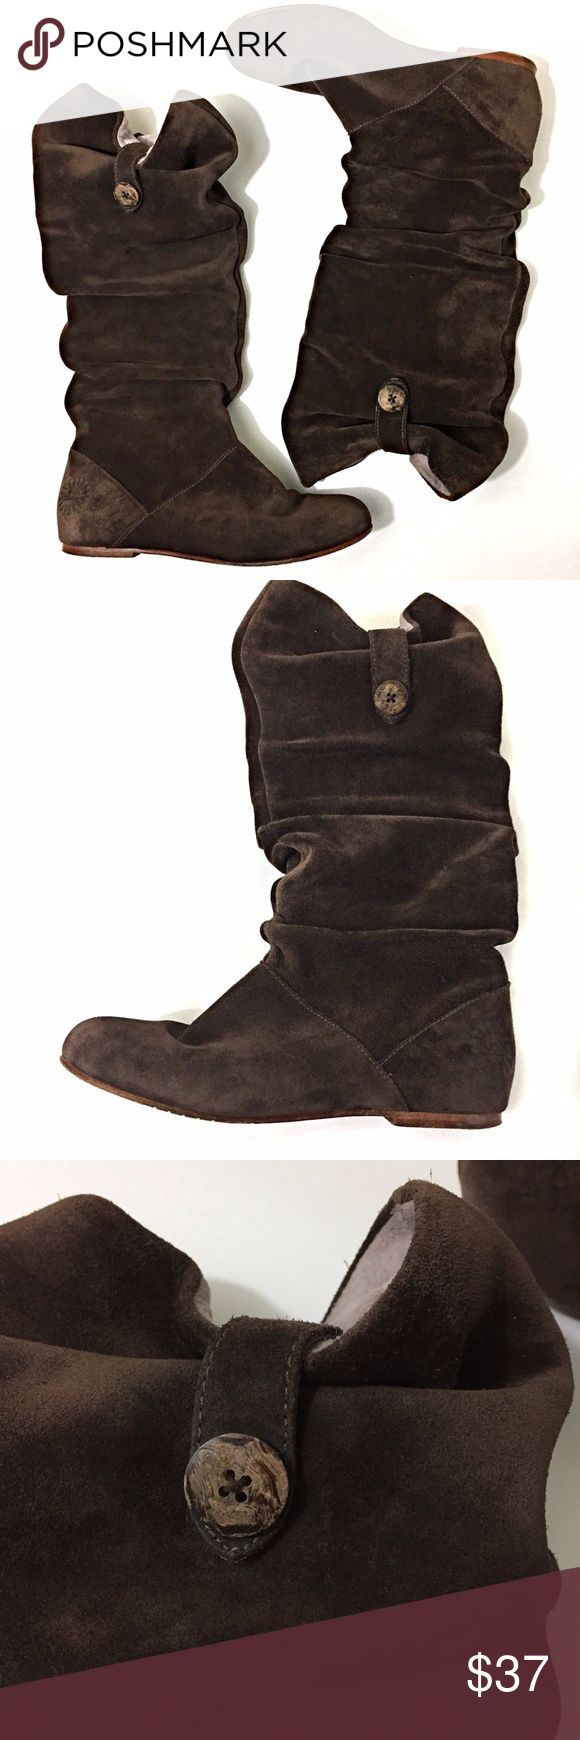 Ugg Highkoo II Dark Brown Suede 1948 Button Boots UGG Australia Uggs Highkoo II 1948 Womens U.S. size 6 EU 37  Dark espresso brown suede with button Slouchy Pre-owned, some wear on the soles.  Overall good condition as seen in the photos. UGG Shoes